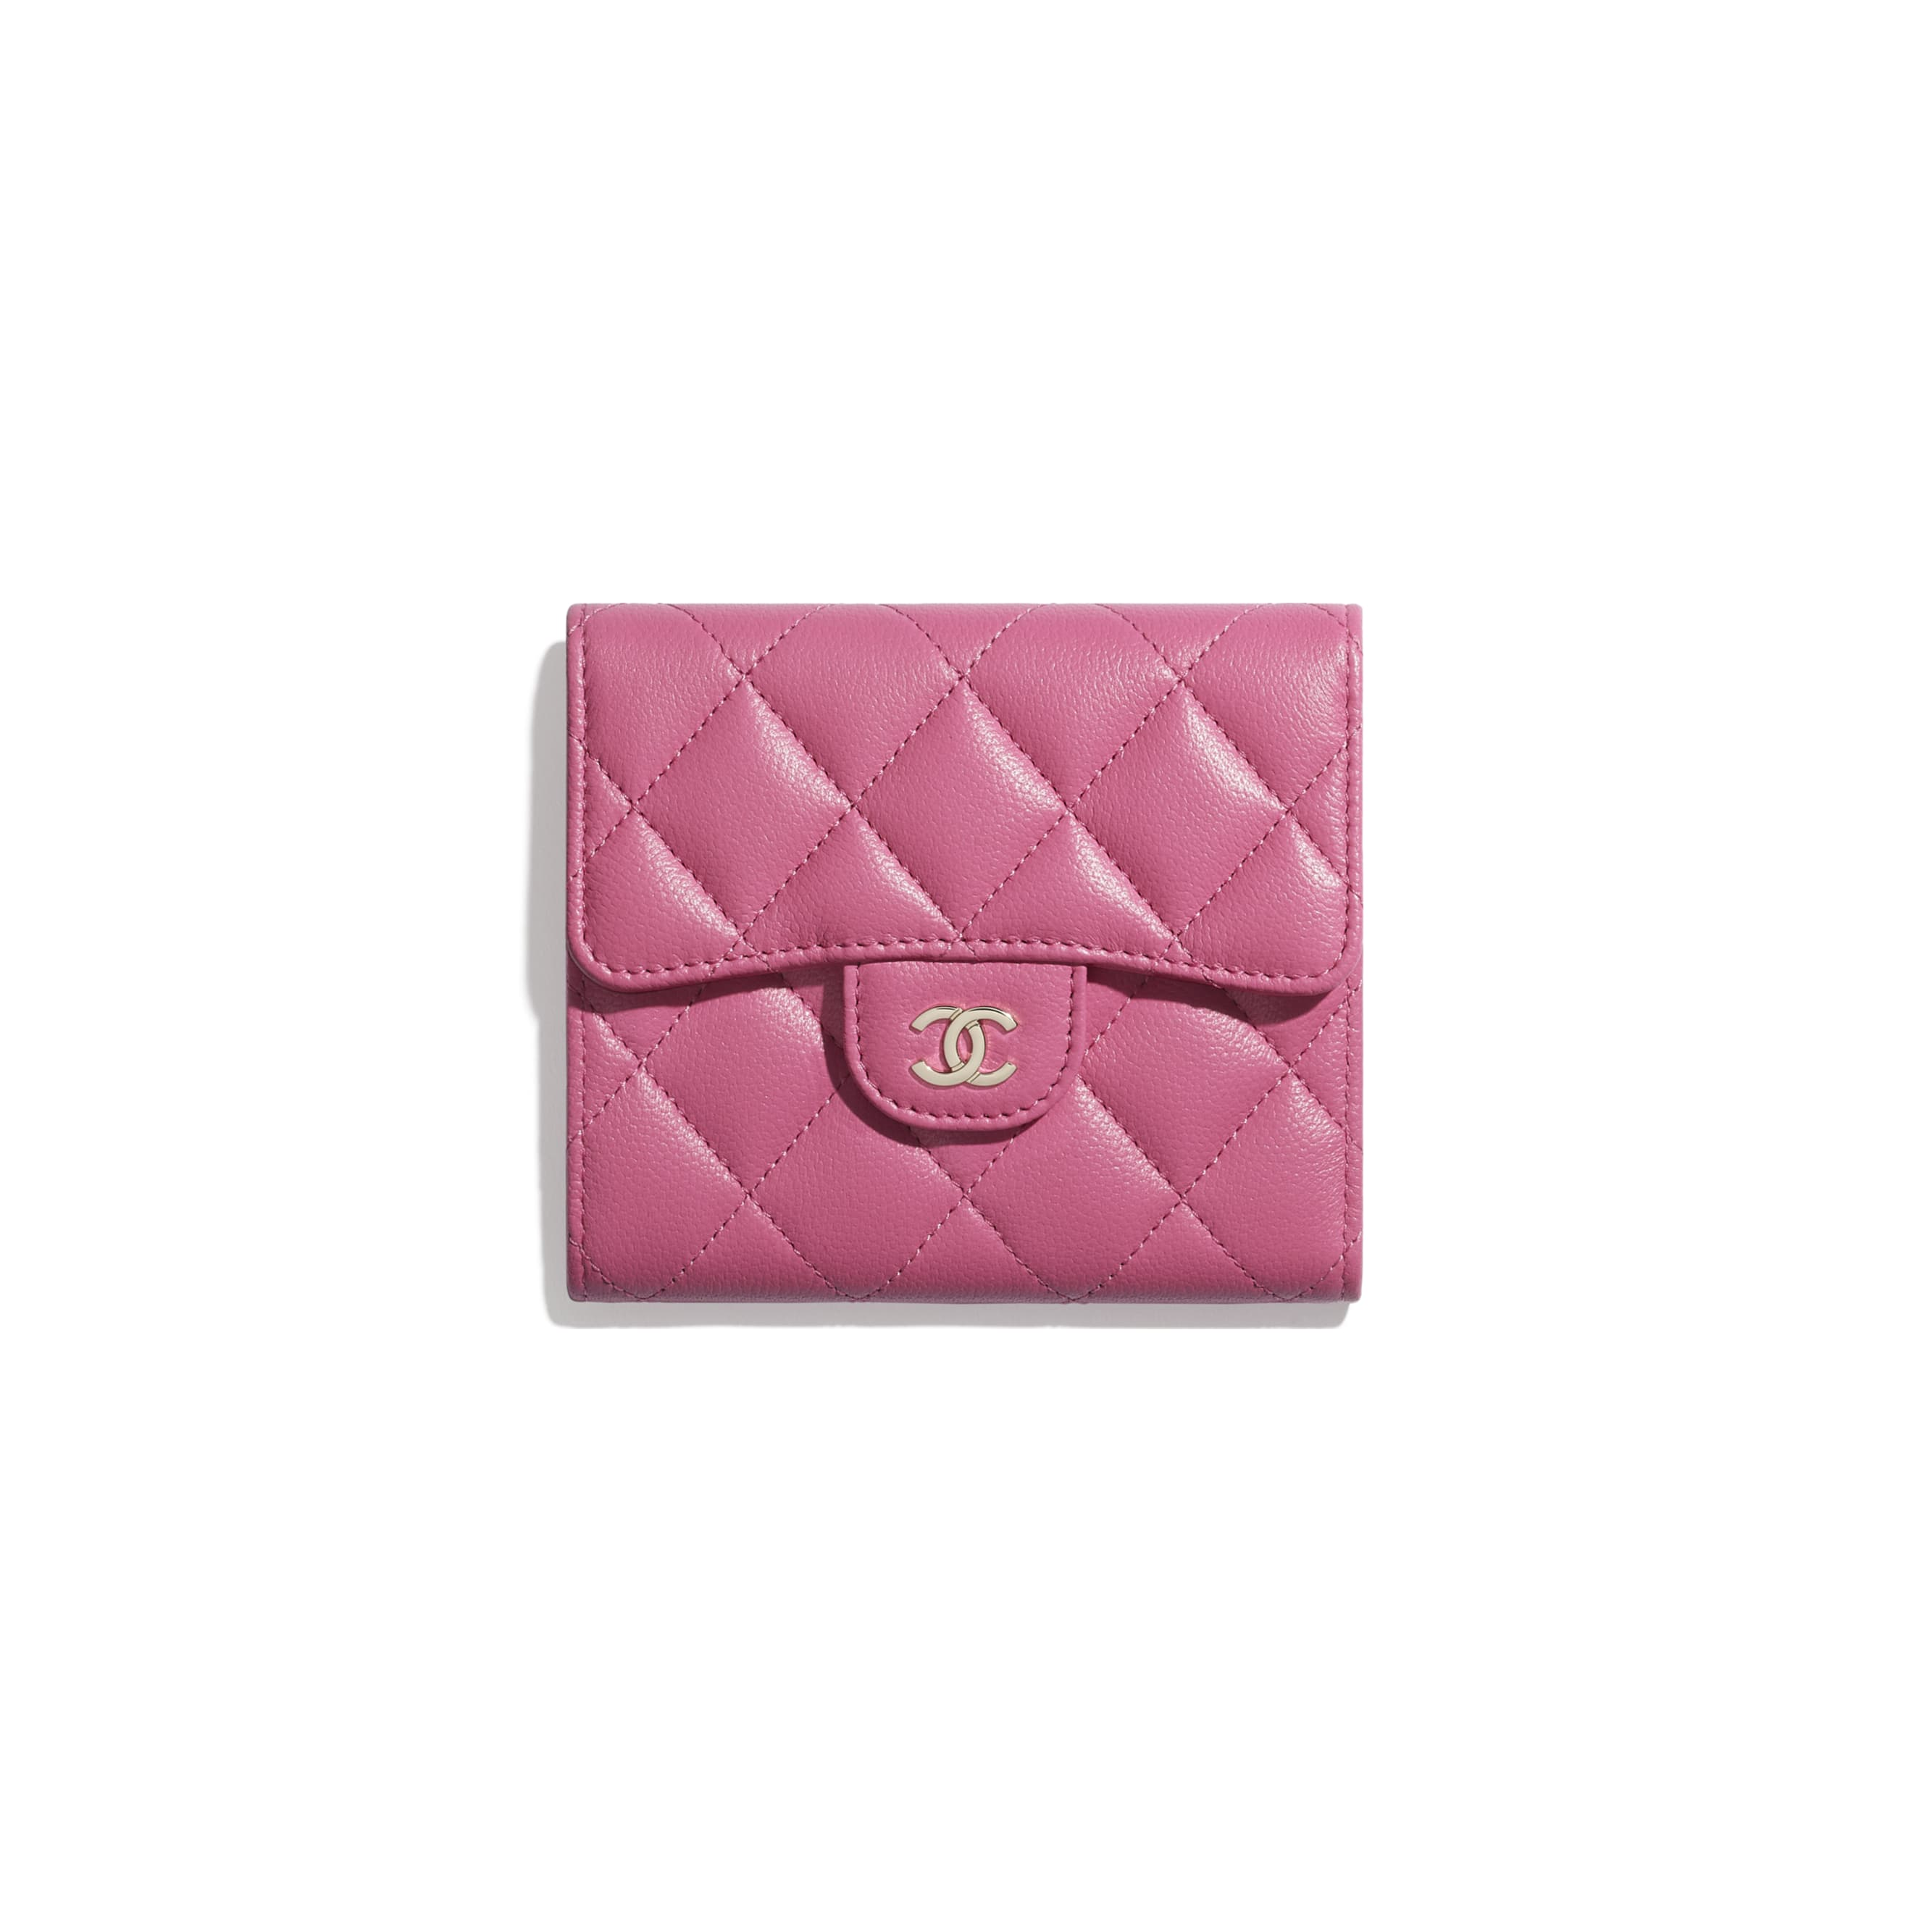 Will Chanel Fix My Bag? Everything You Need to Know About Chanel Repair chanel wallet repair